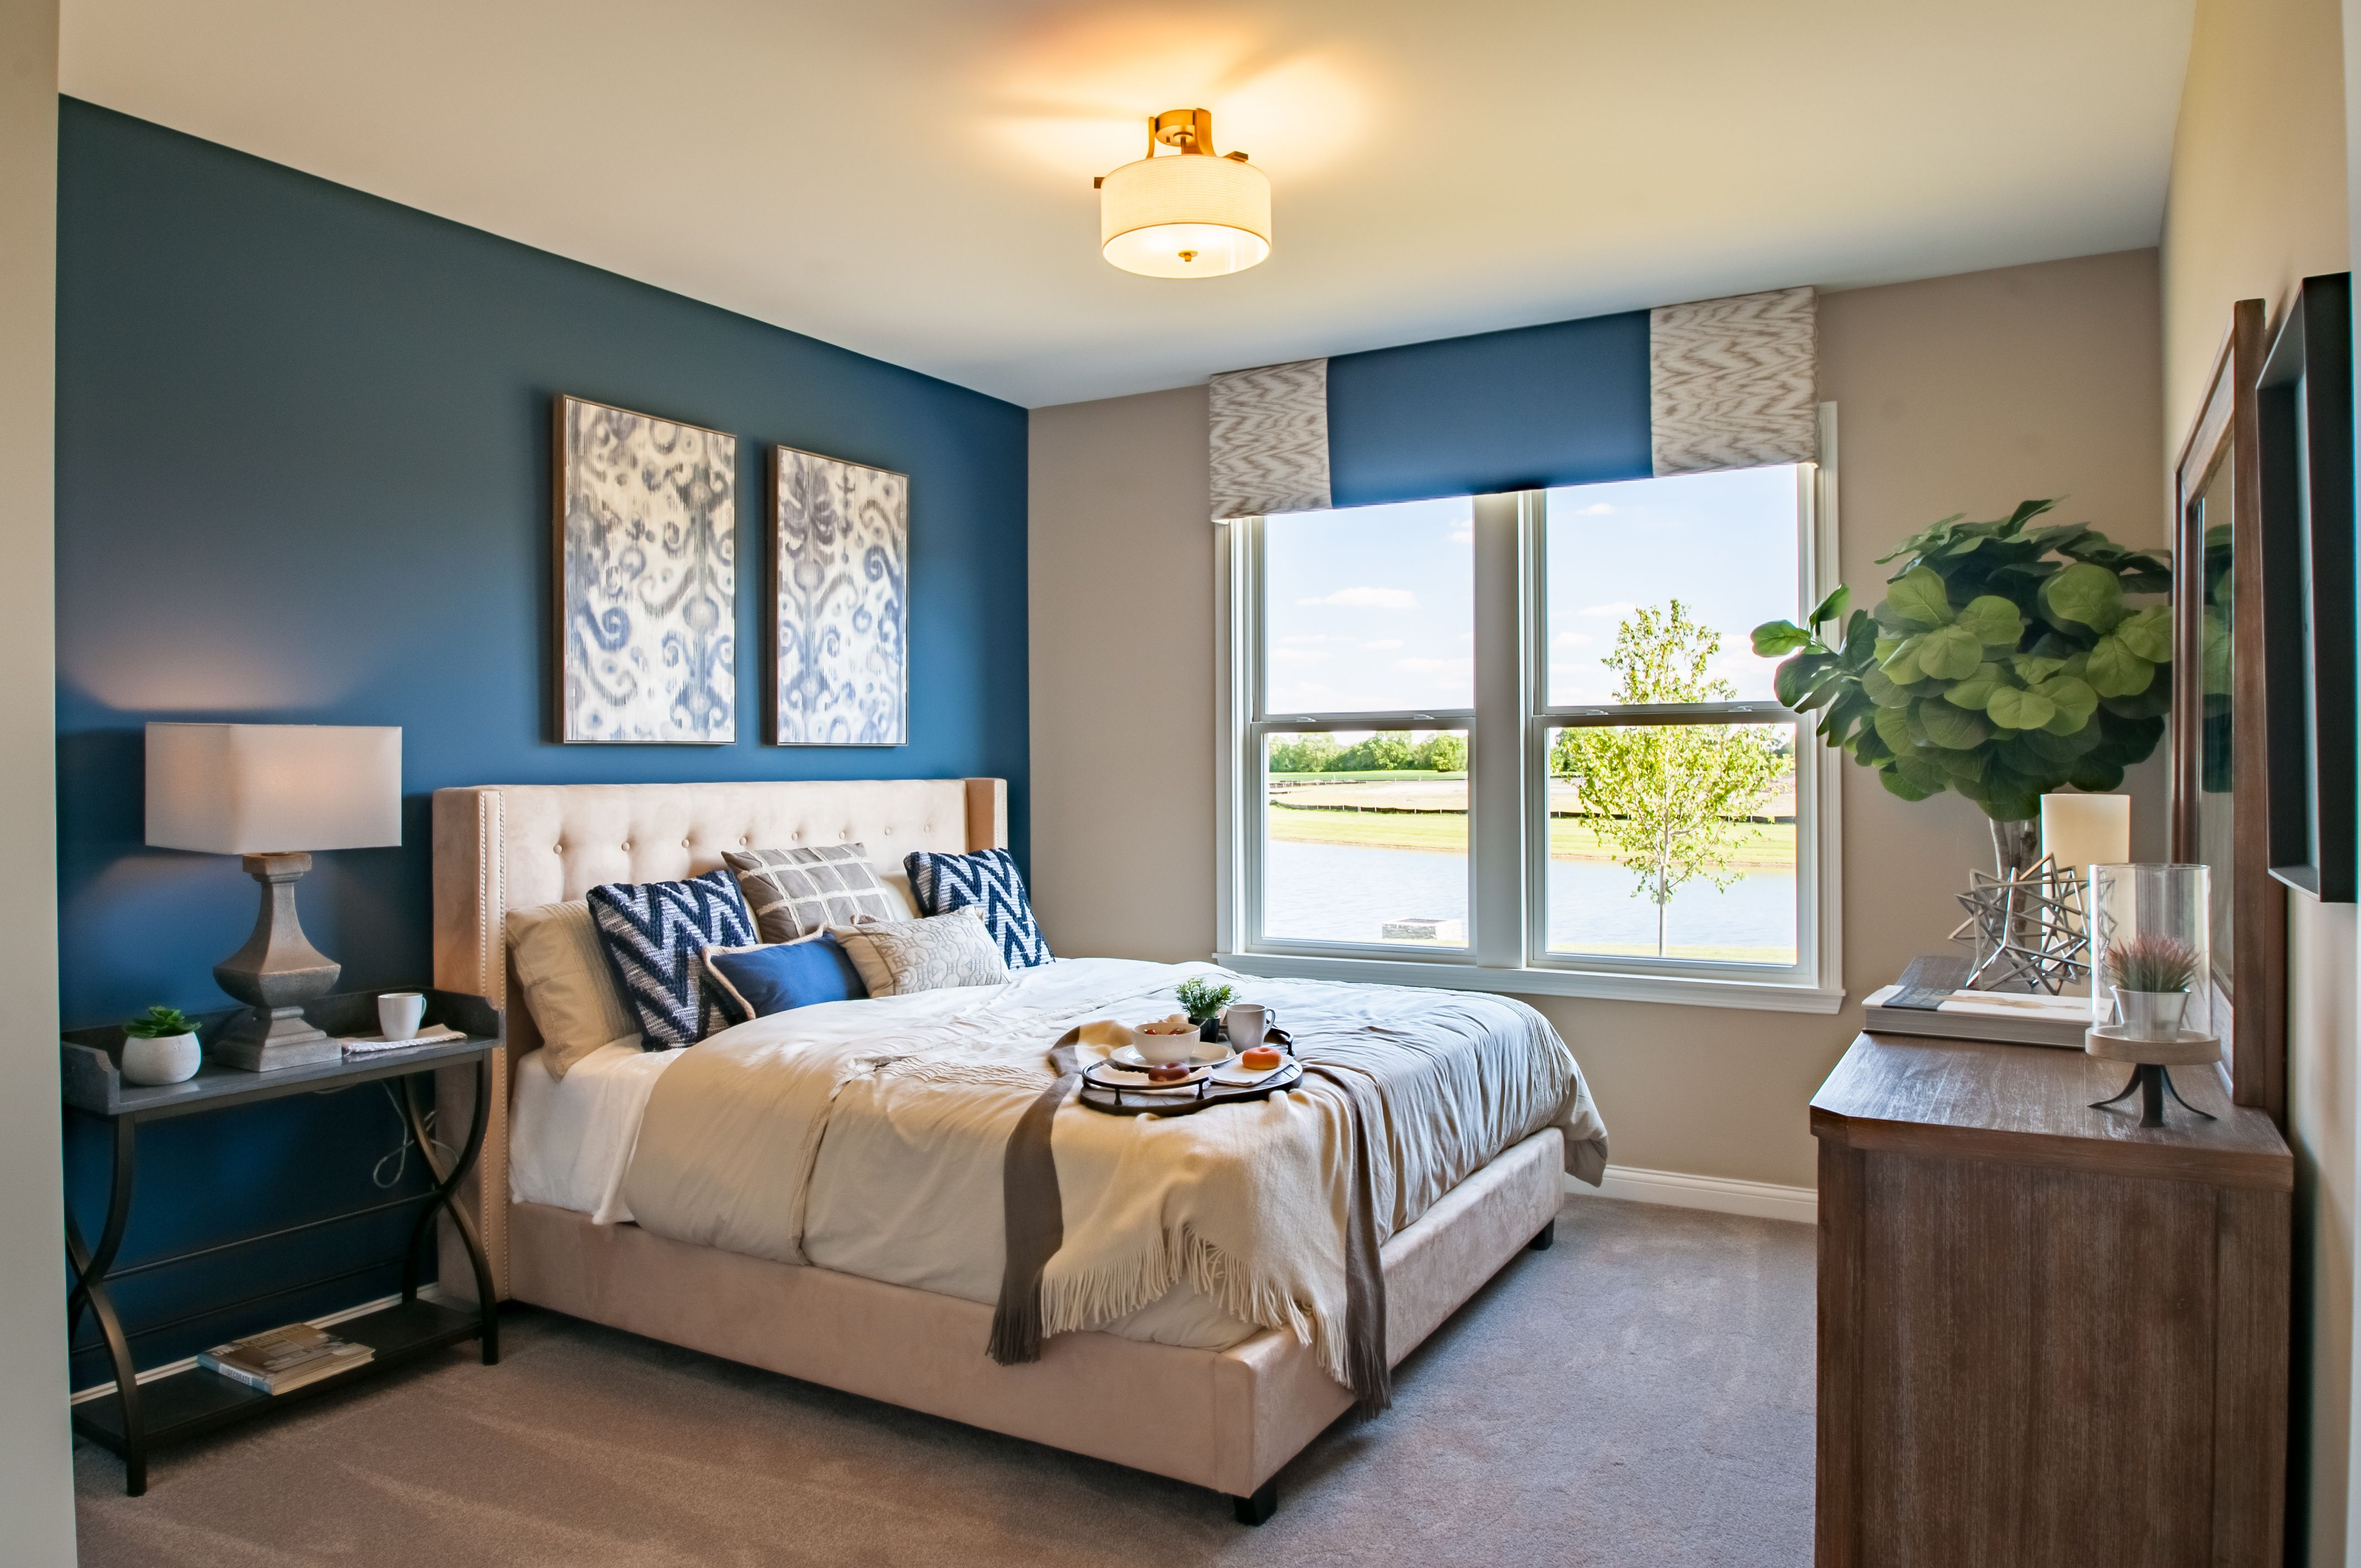 Bedroom featured in the Stanton By Fischer Homes  in Columbus, OH